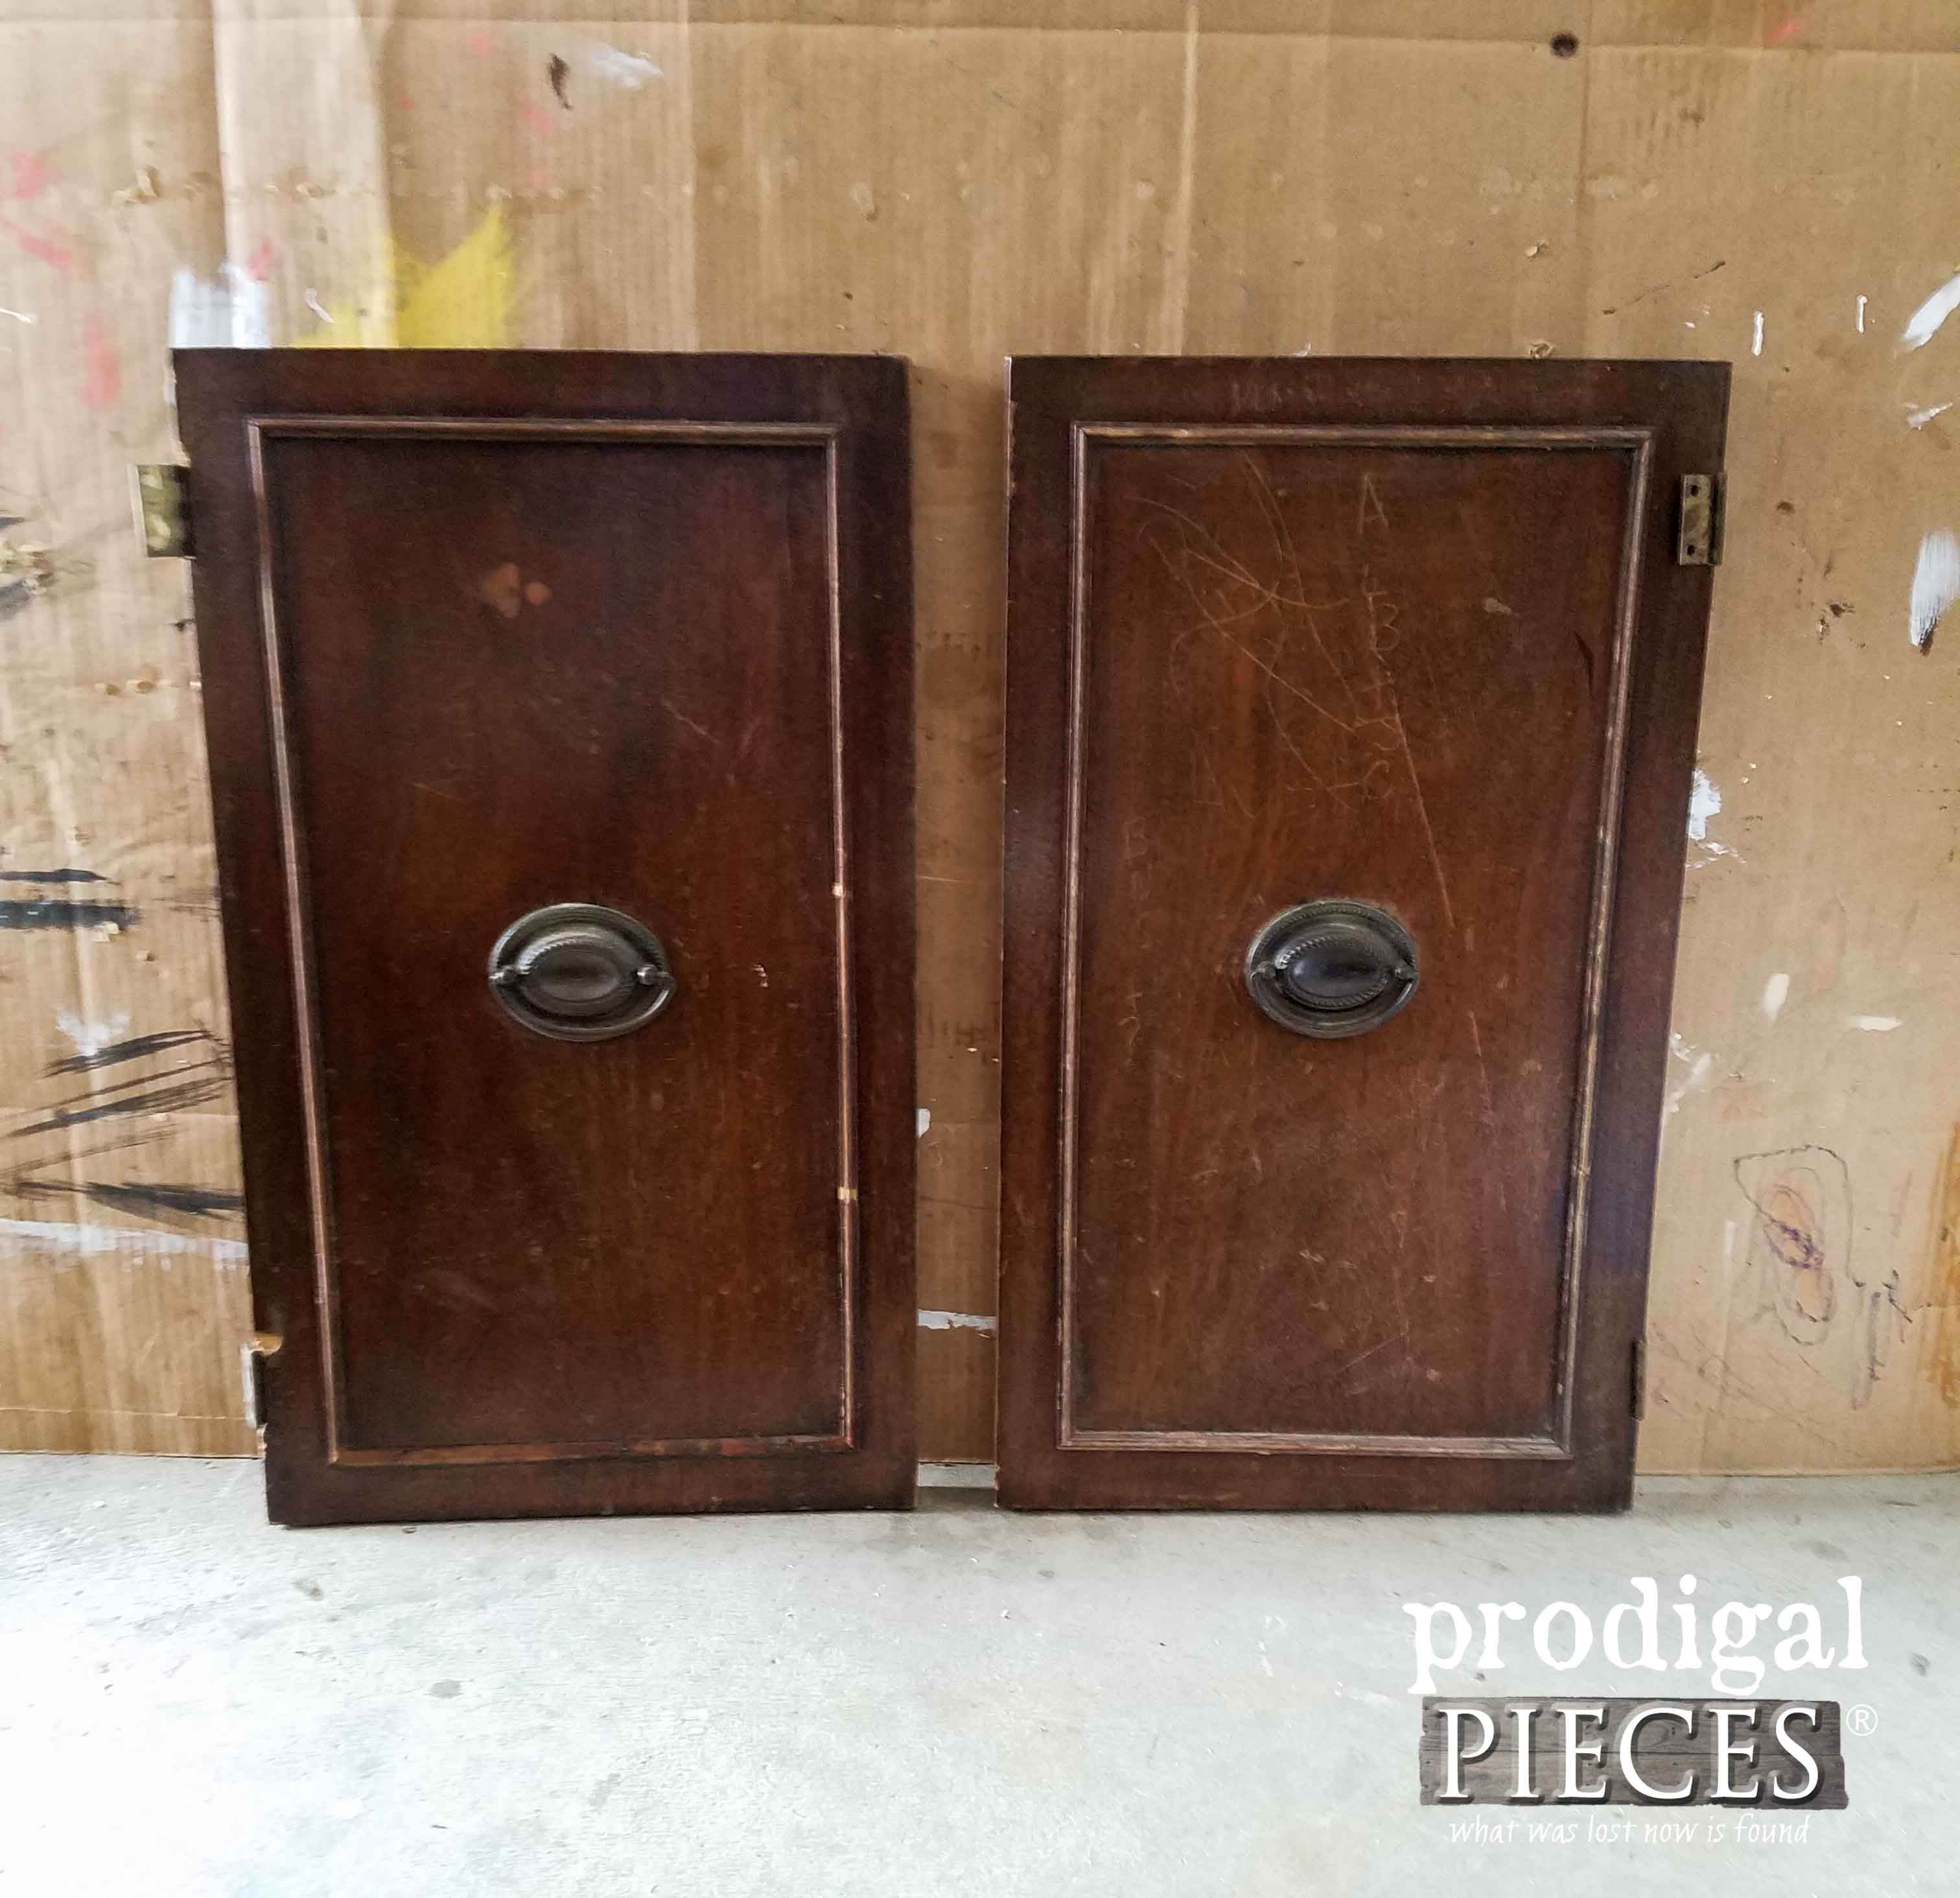 Cupboard Doors Before Repurposing | Prodigal Pieces | prodigalpieces.com